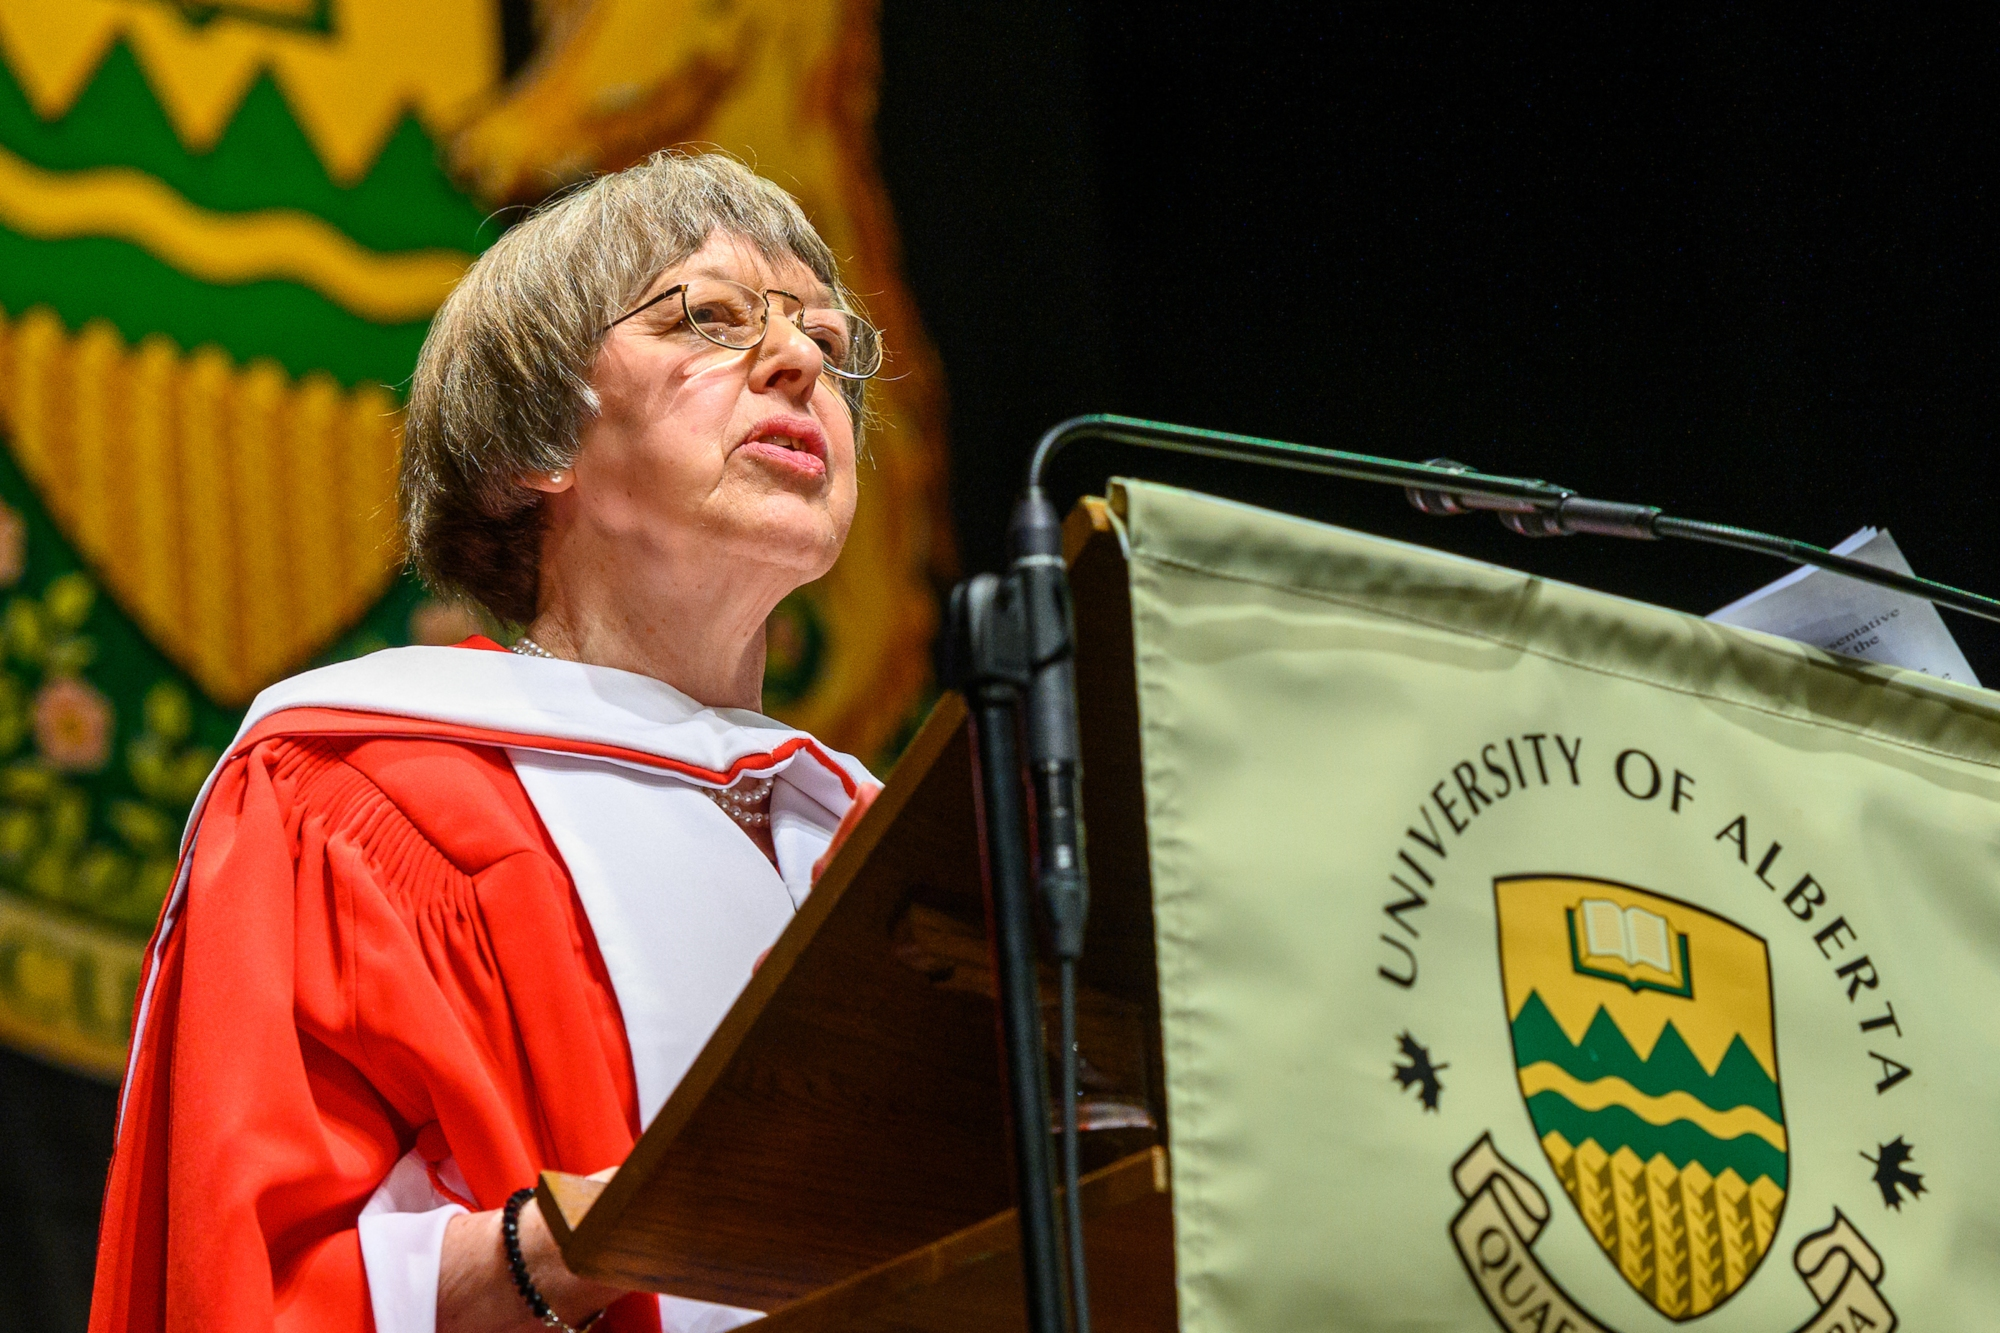 Carol Cass, honorary doctor of science